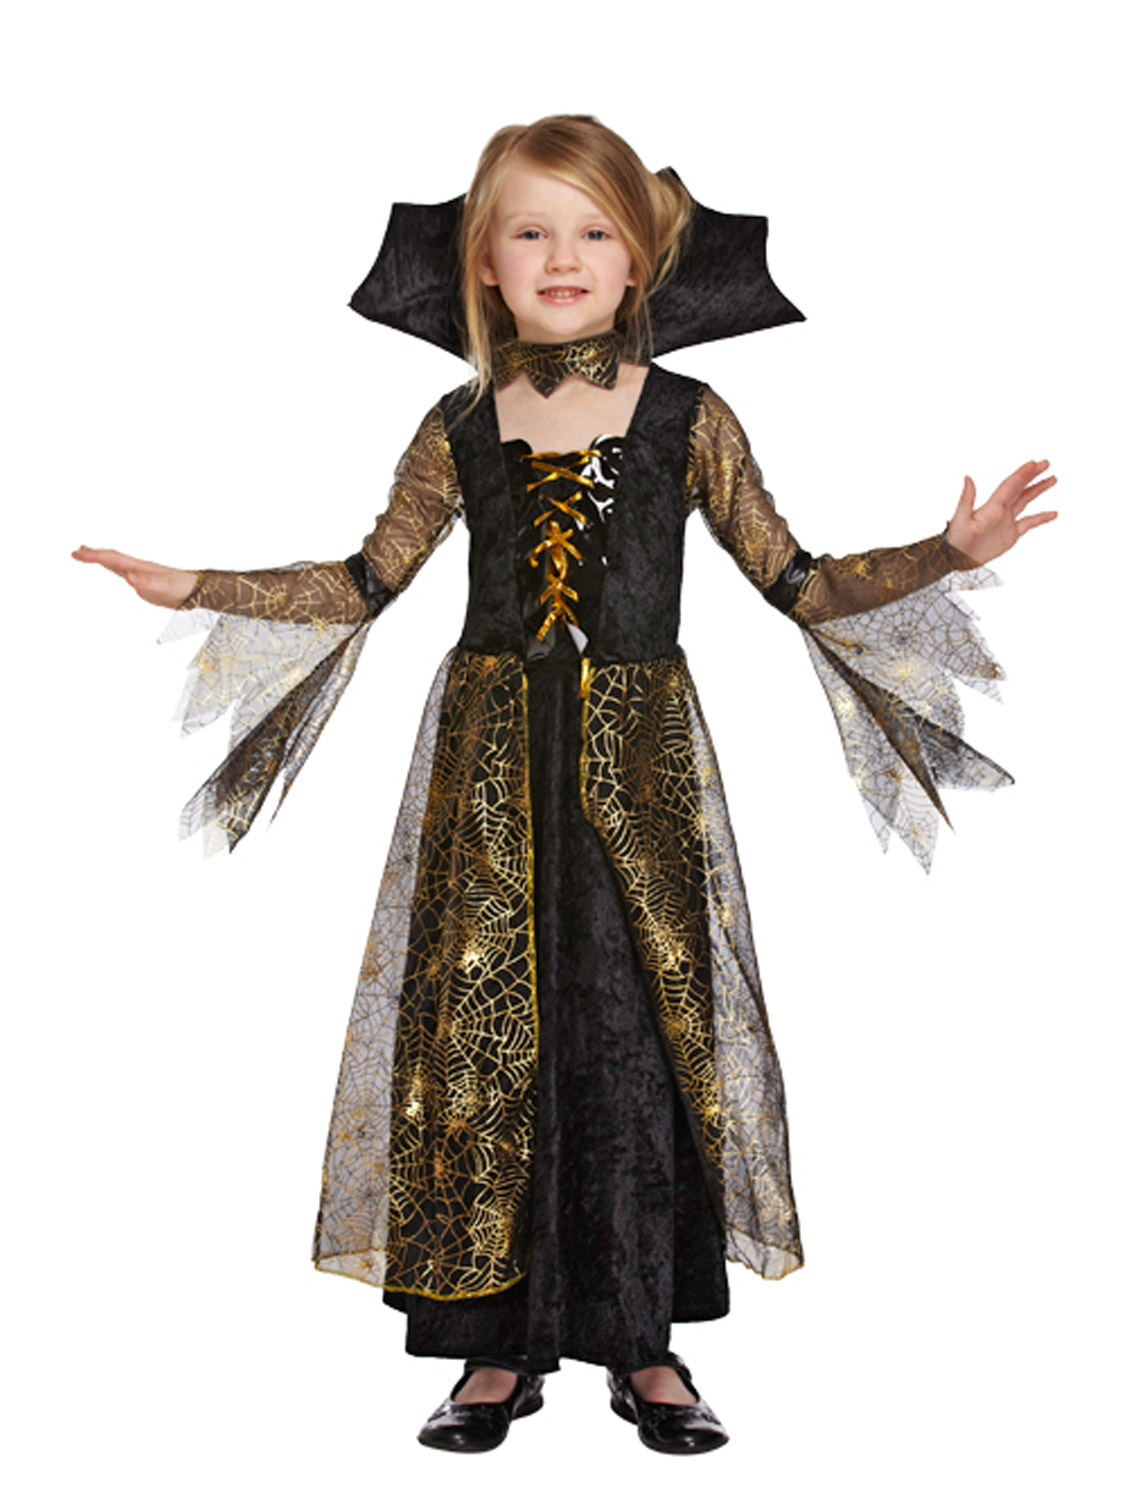 Girls V&ire Costume Spiderella V&iress Fancy Dress Outfit Halloween Party. Image 2  sc 1 st  eBay & Girls Vampire Costume Spiderella Vampiress Fancy Dress Outfit ...